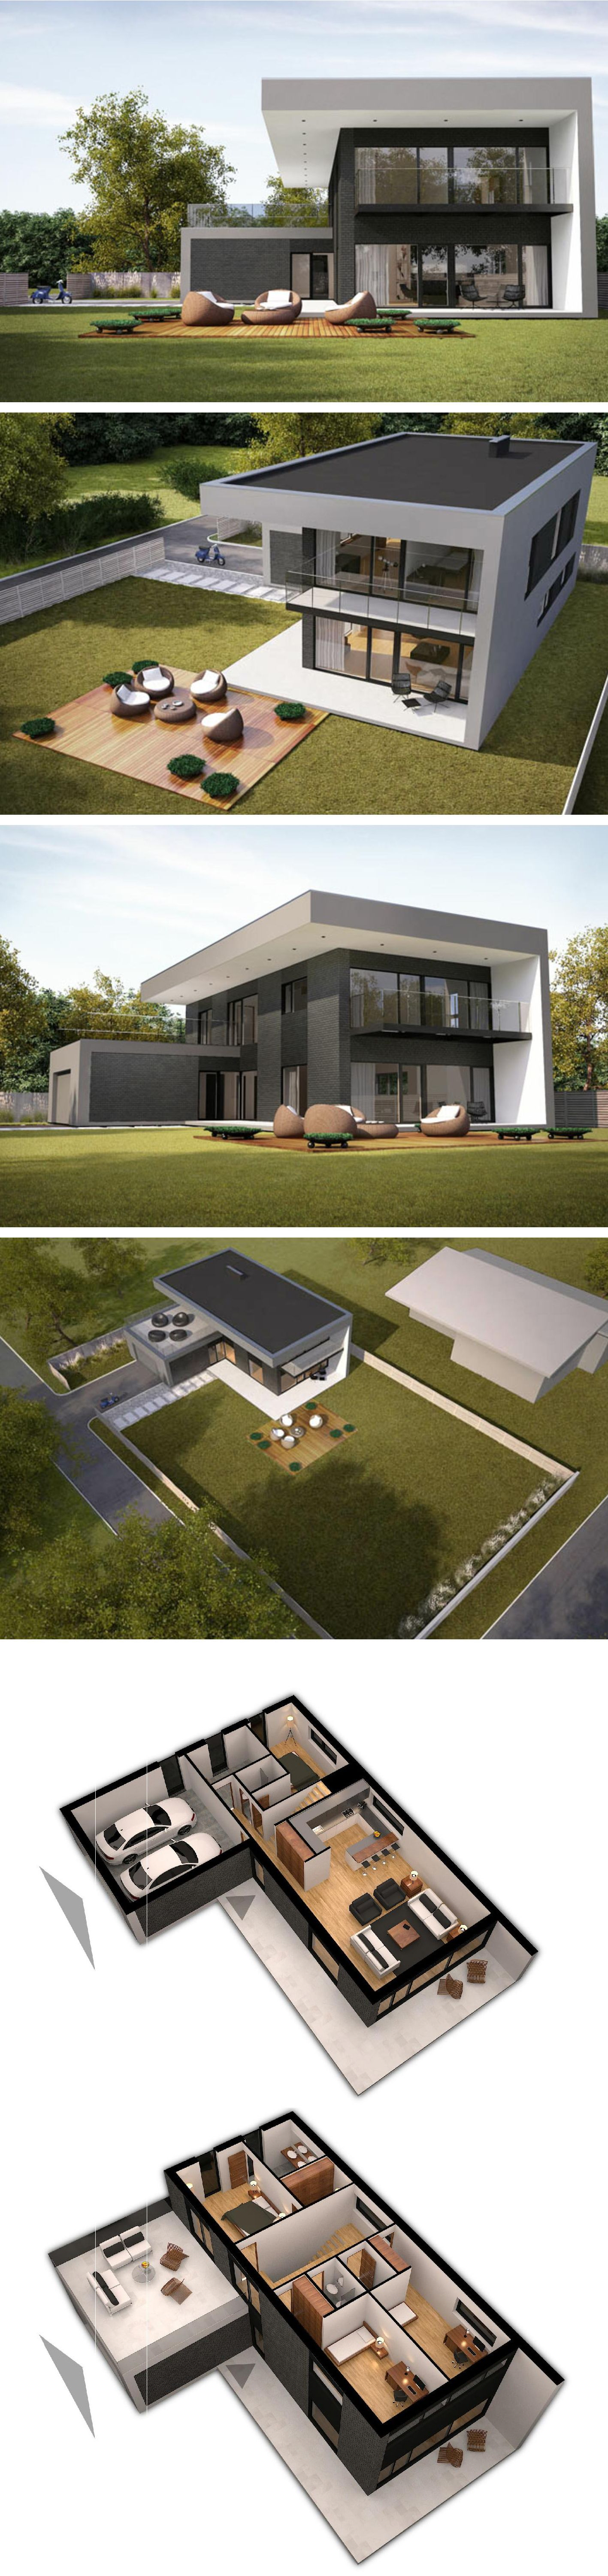 100 Future Architecture Gallery V.5 | Free Cad Blocks U0026 Drawings Download  Center